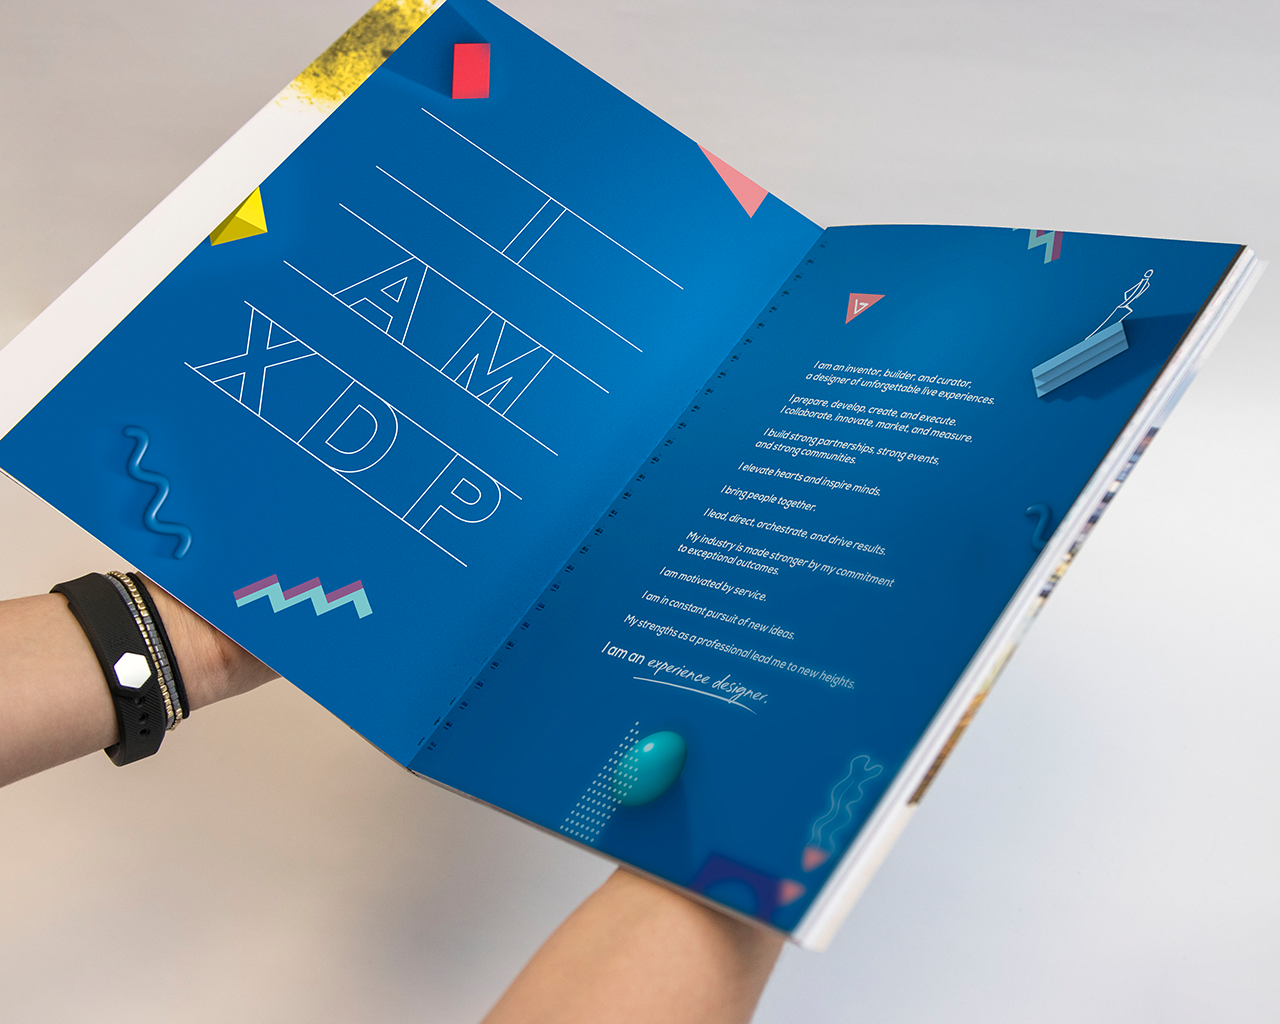 Hands holding an open spread of the XDP 2019 event playbook